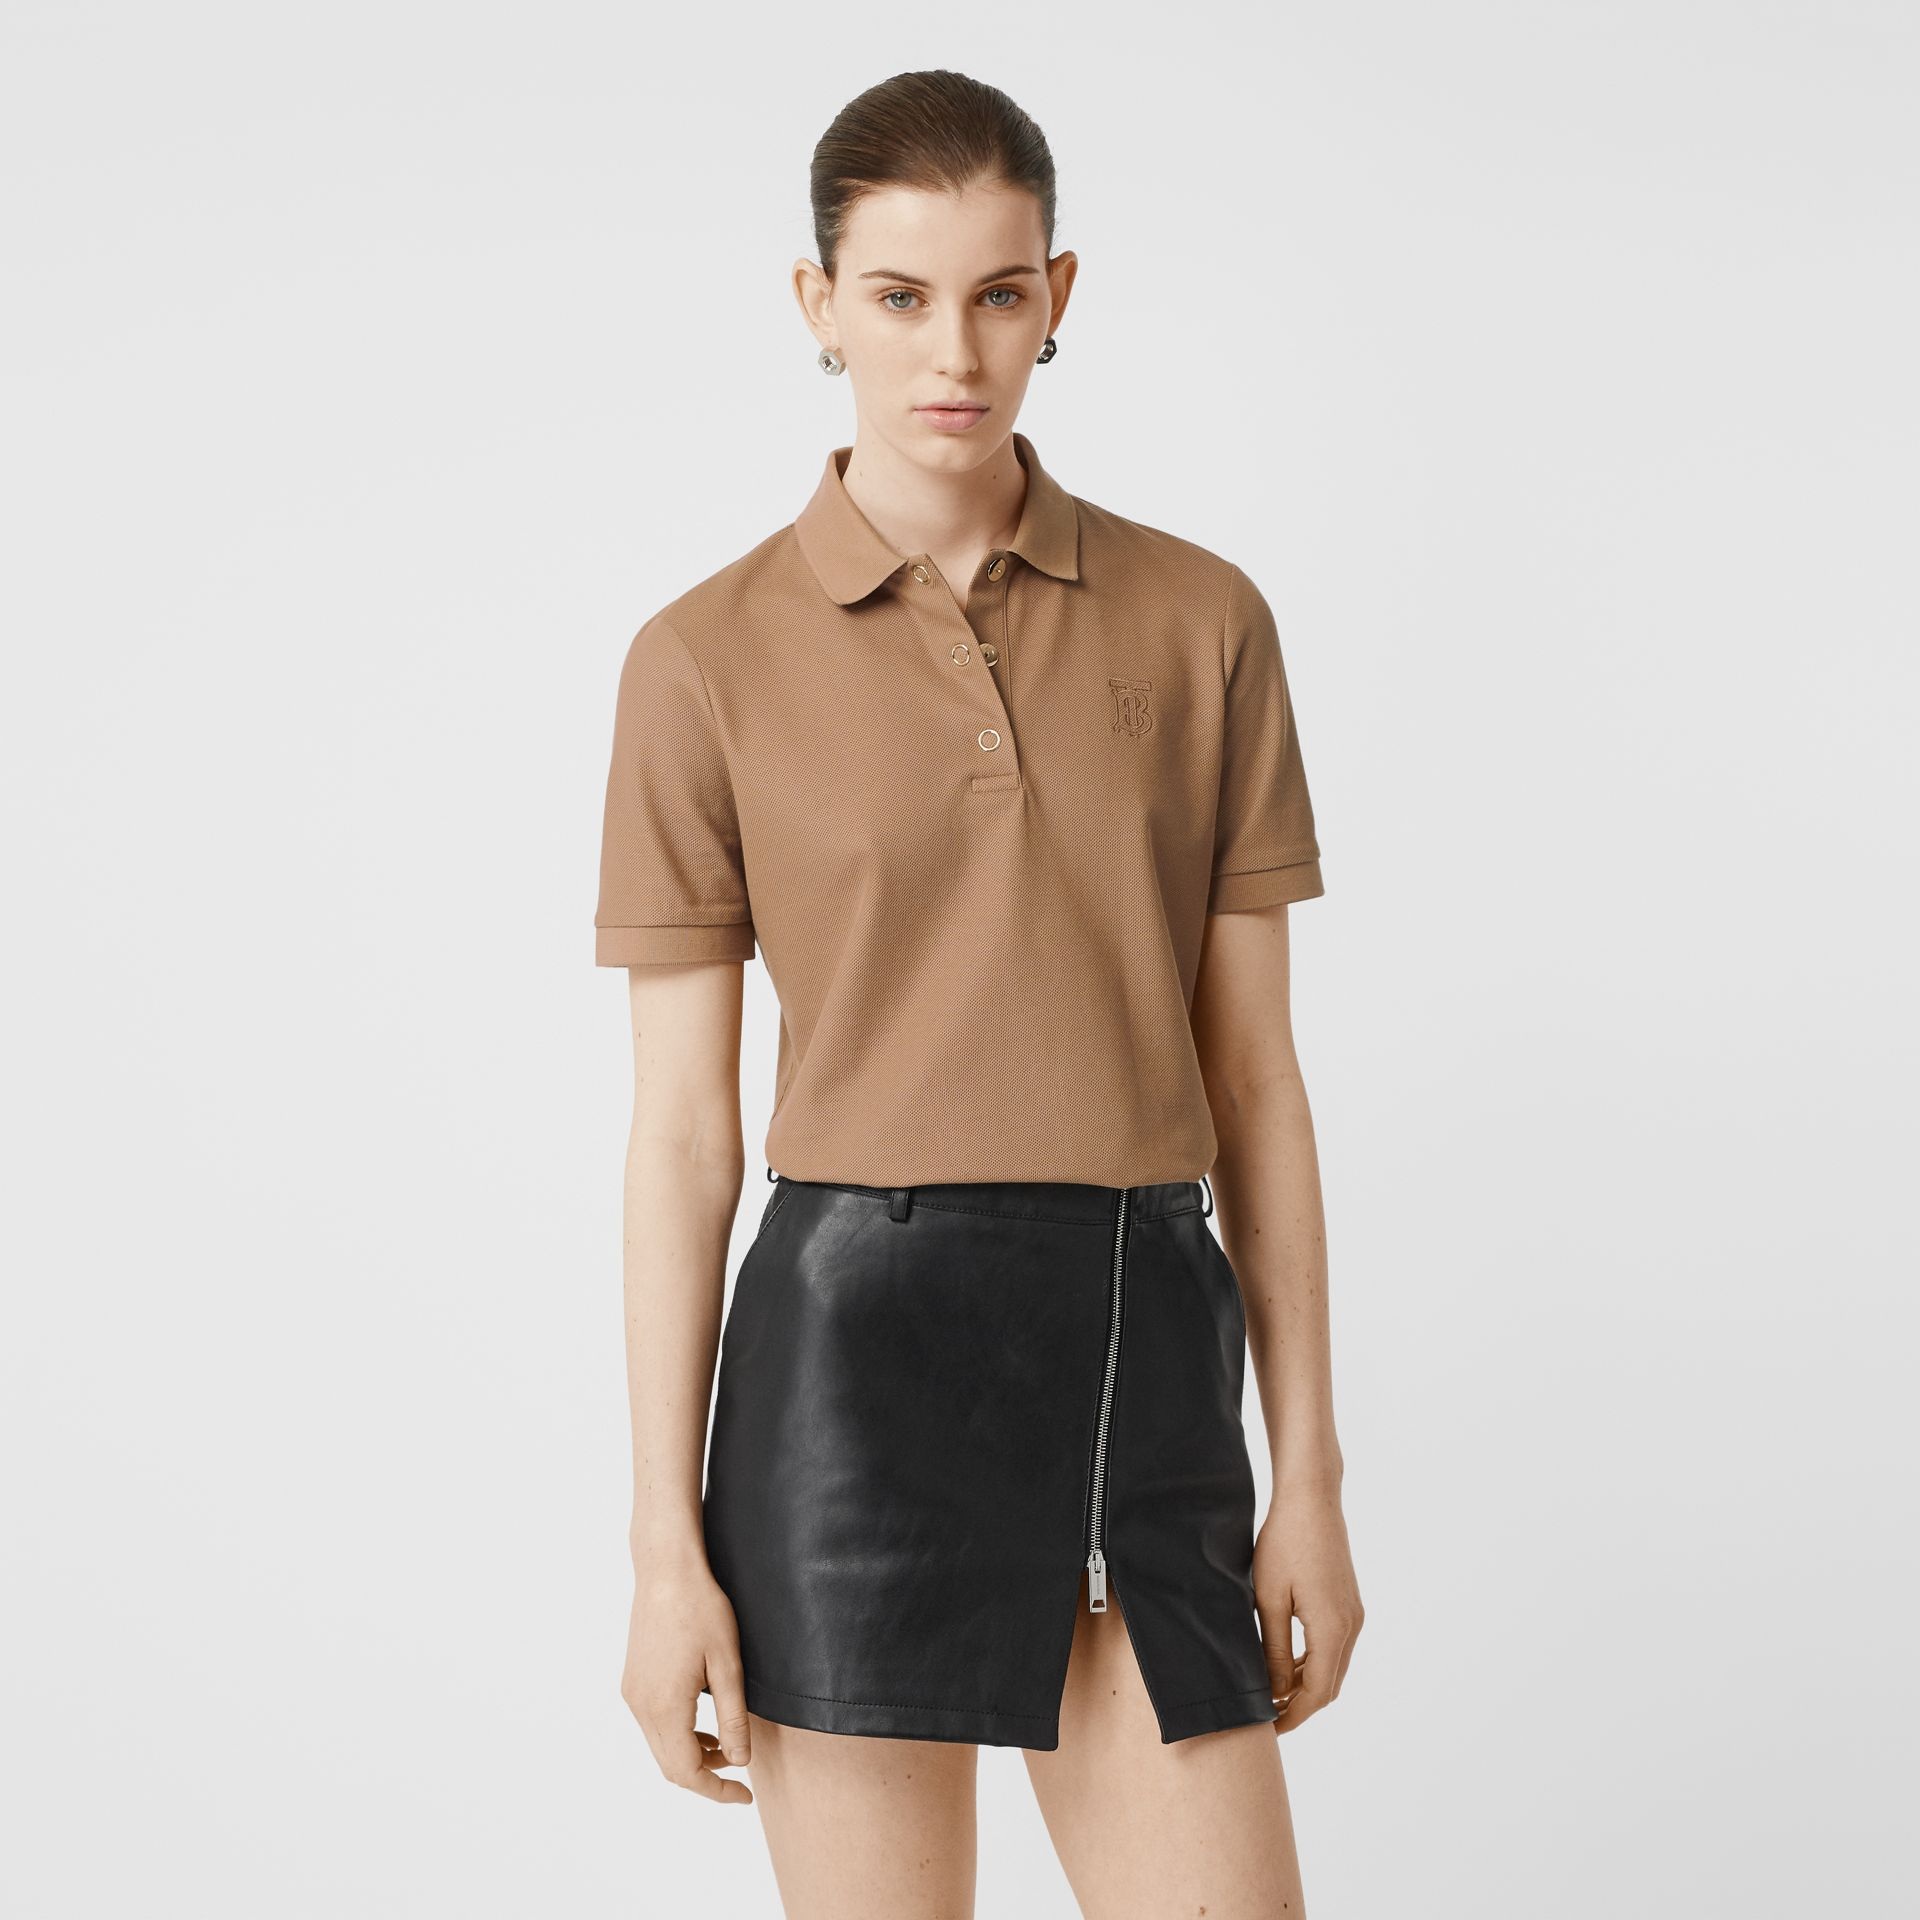 Monogram Motif Cotton Piqué Polo Shirt in Camel - Women | Burberry United States - gallery image 4